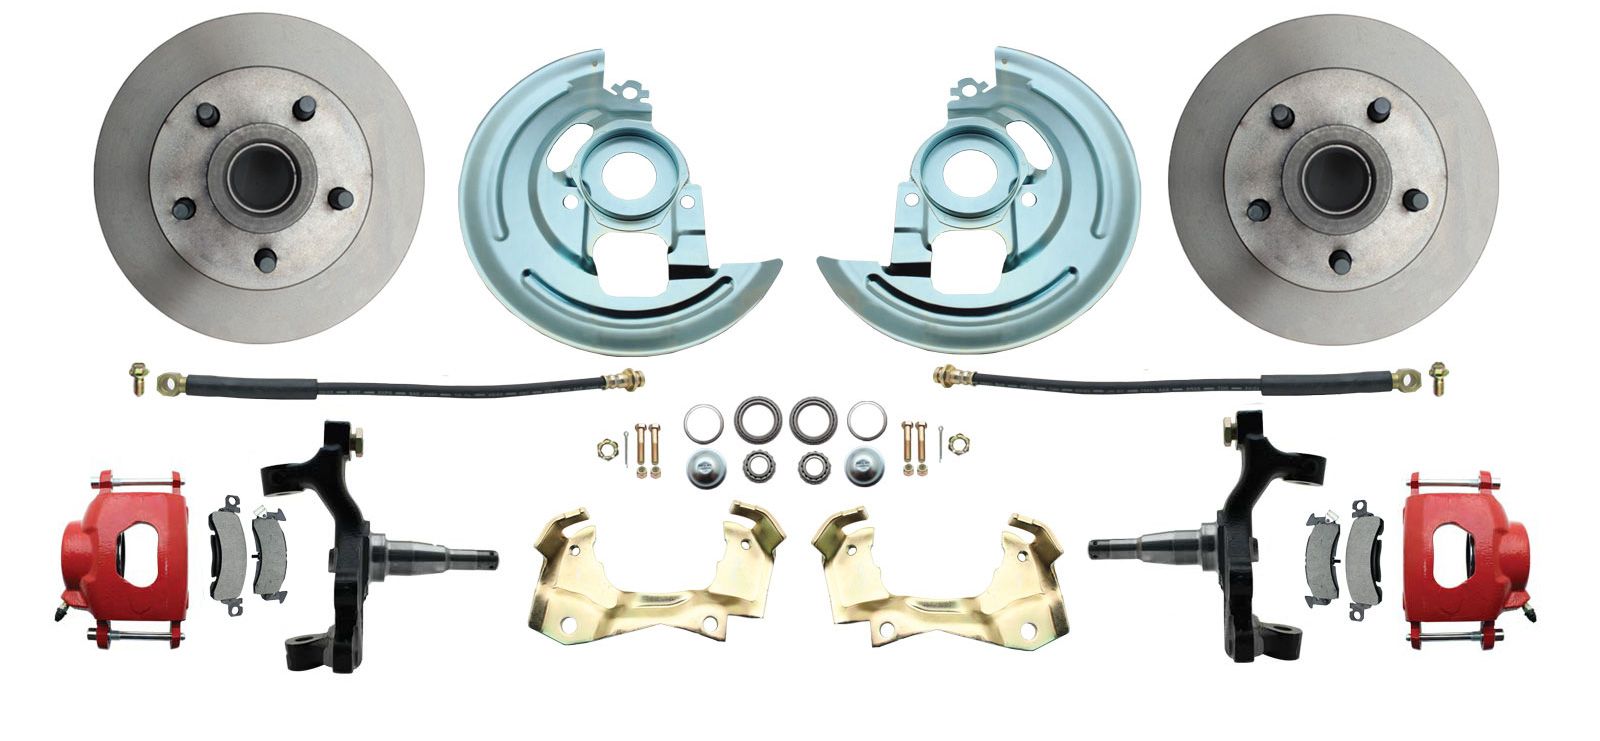 1967-1969 Camaro/ Firebird & 1968-1974 Chevy Nova 2 Drop Front Disc Brake Kit Red Calipers